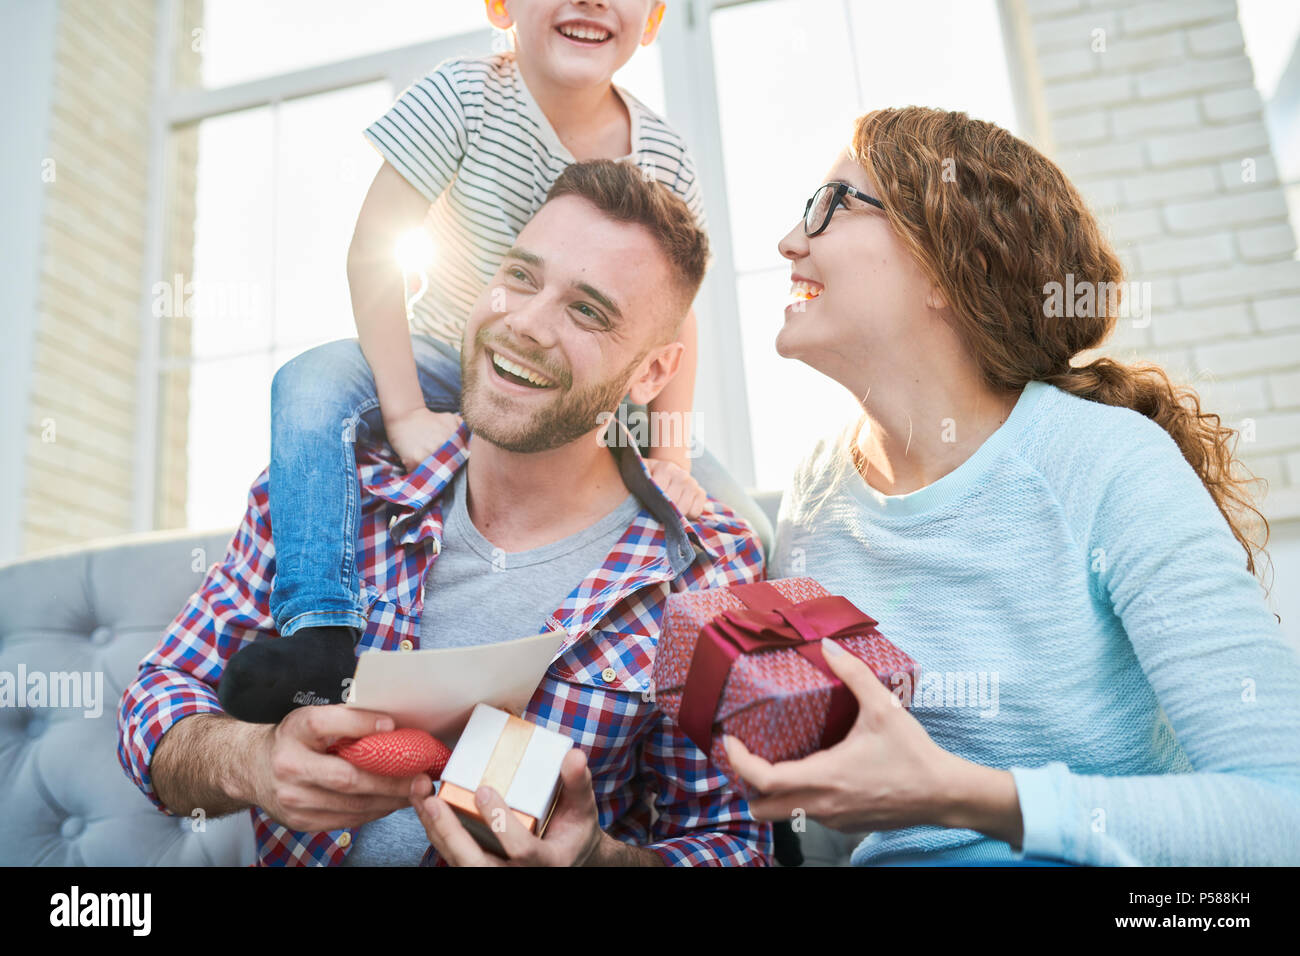 Warm toned portrait of playful happy family holding presents siting on sofa in living room at home, focus on smiling handsome man Stock Photo